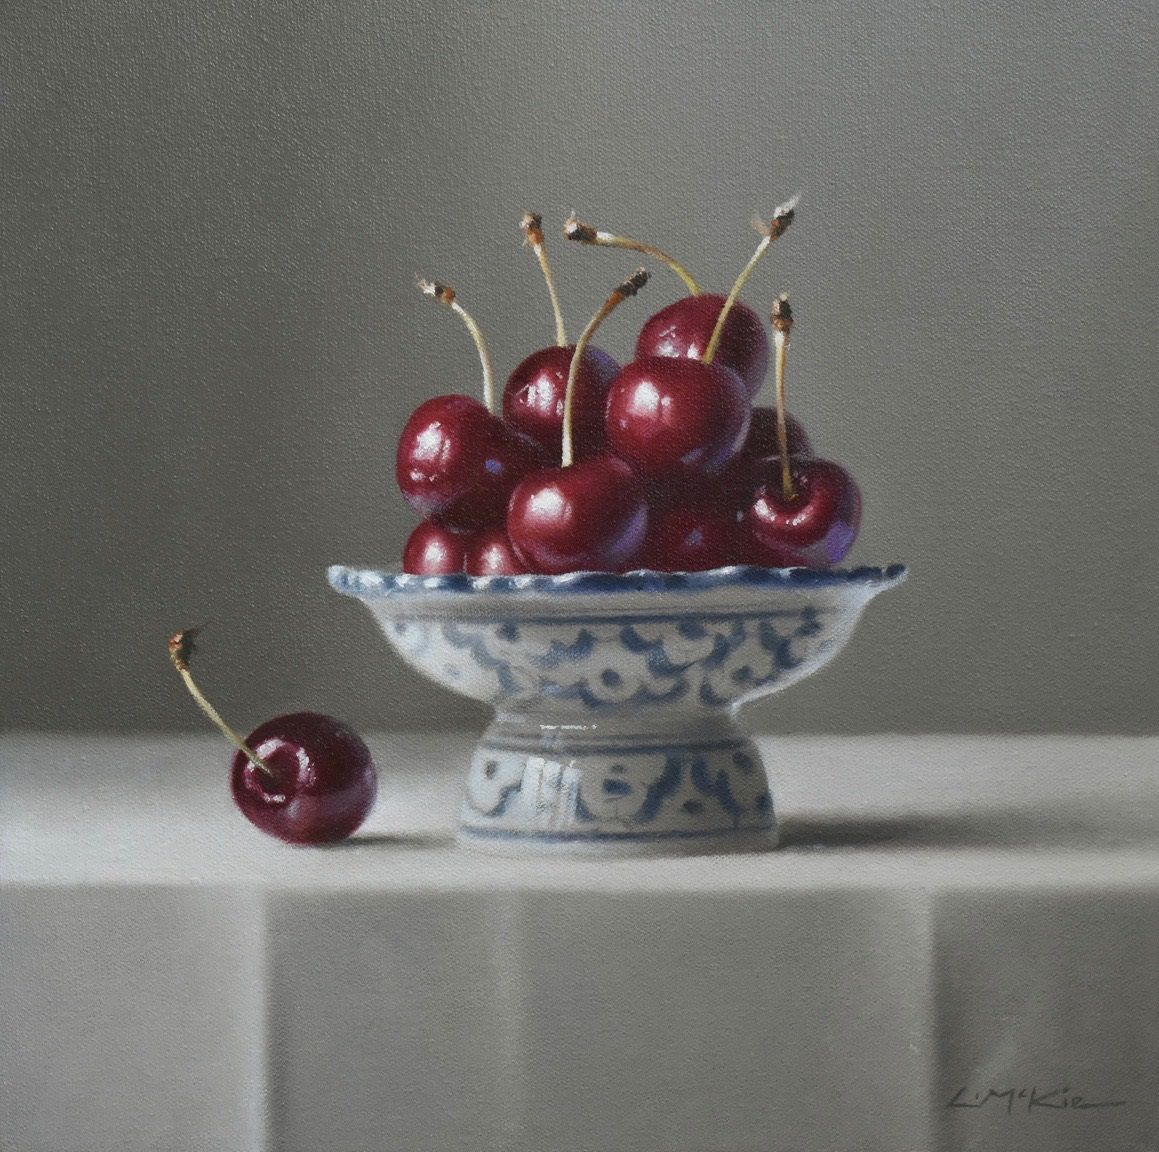 Still Life with Black Cherries